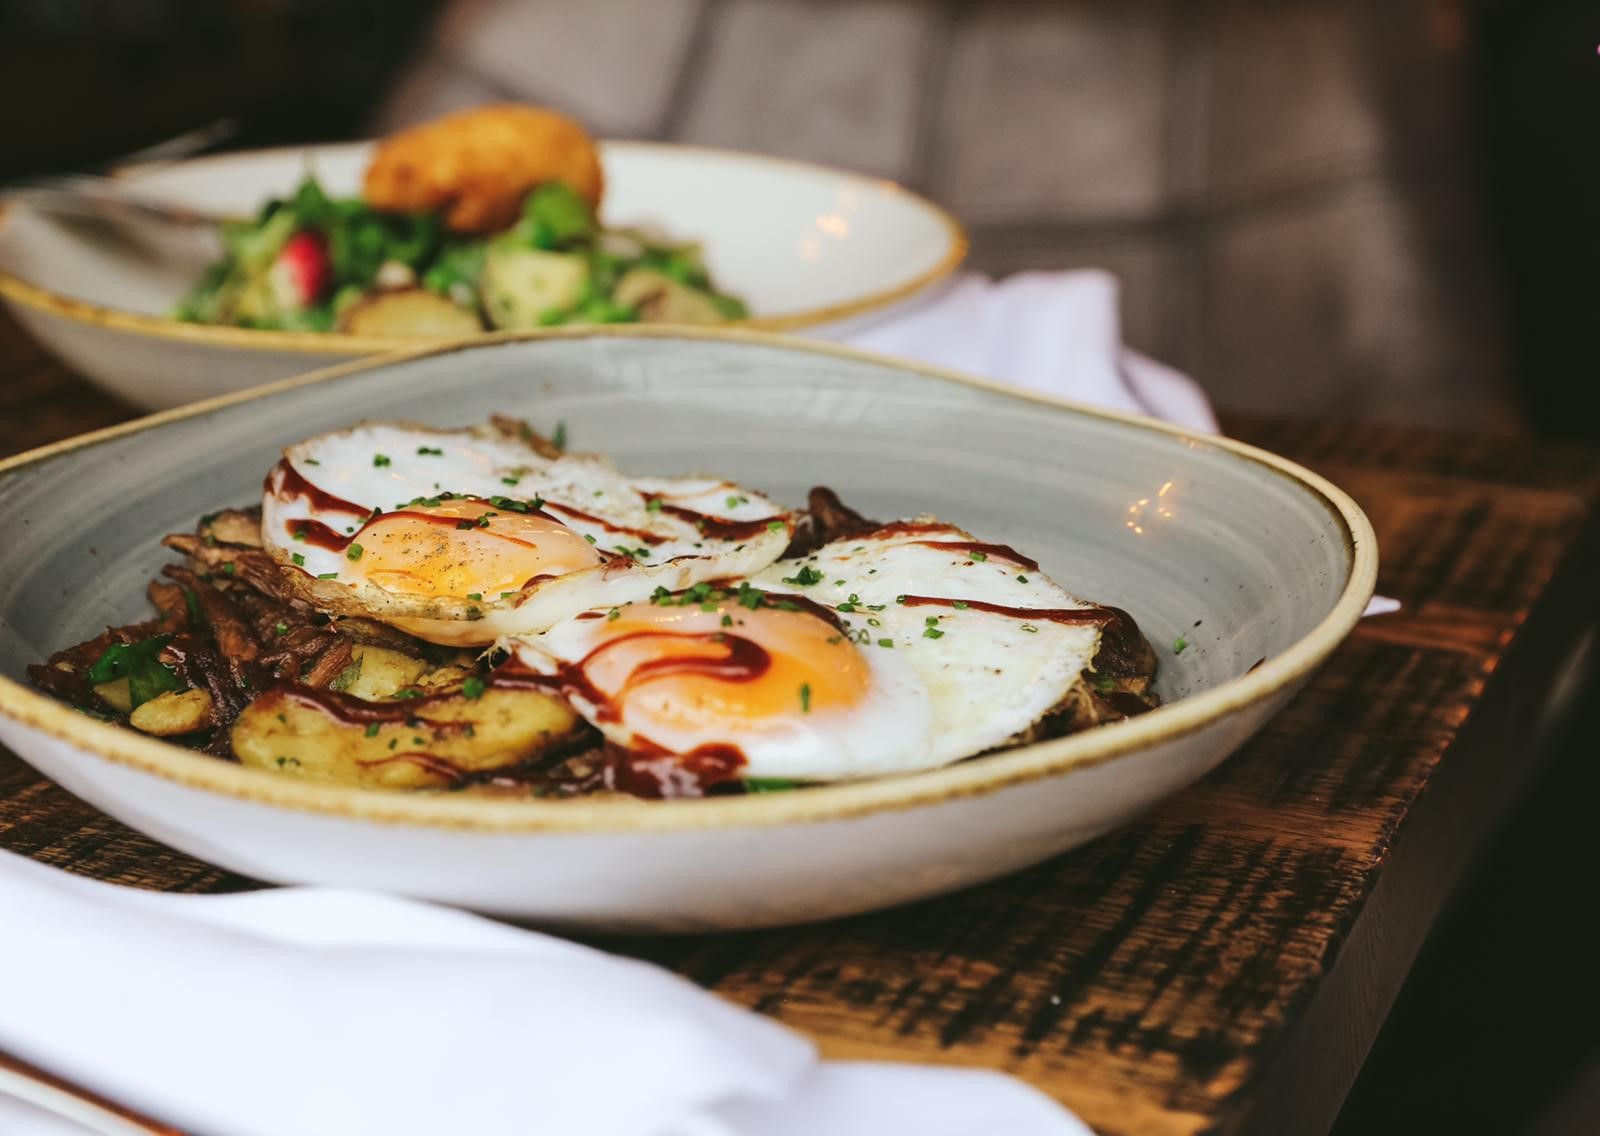 Bottomless Brunch at 'SMITHS'